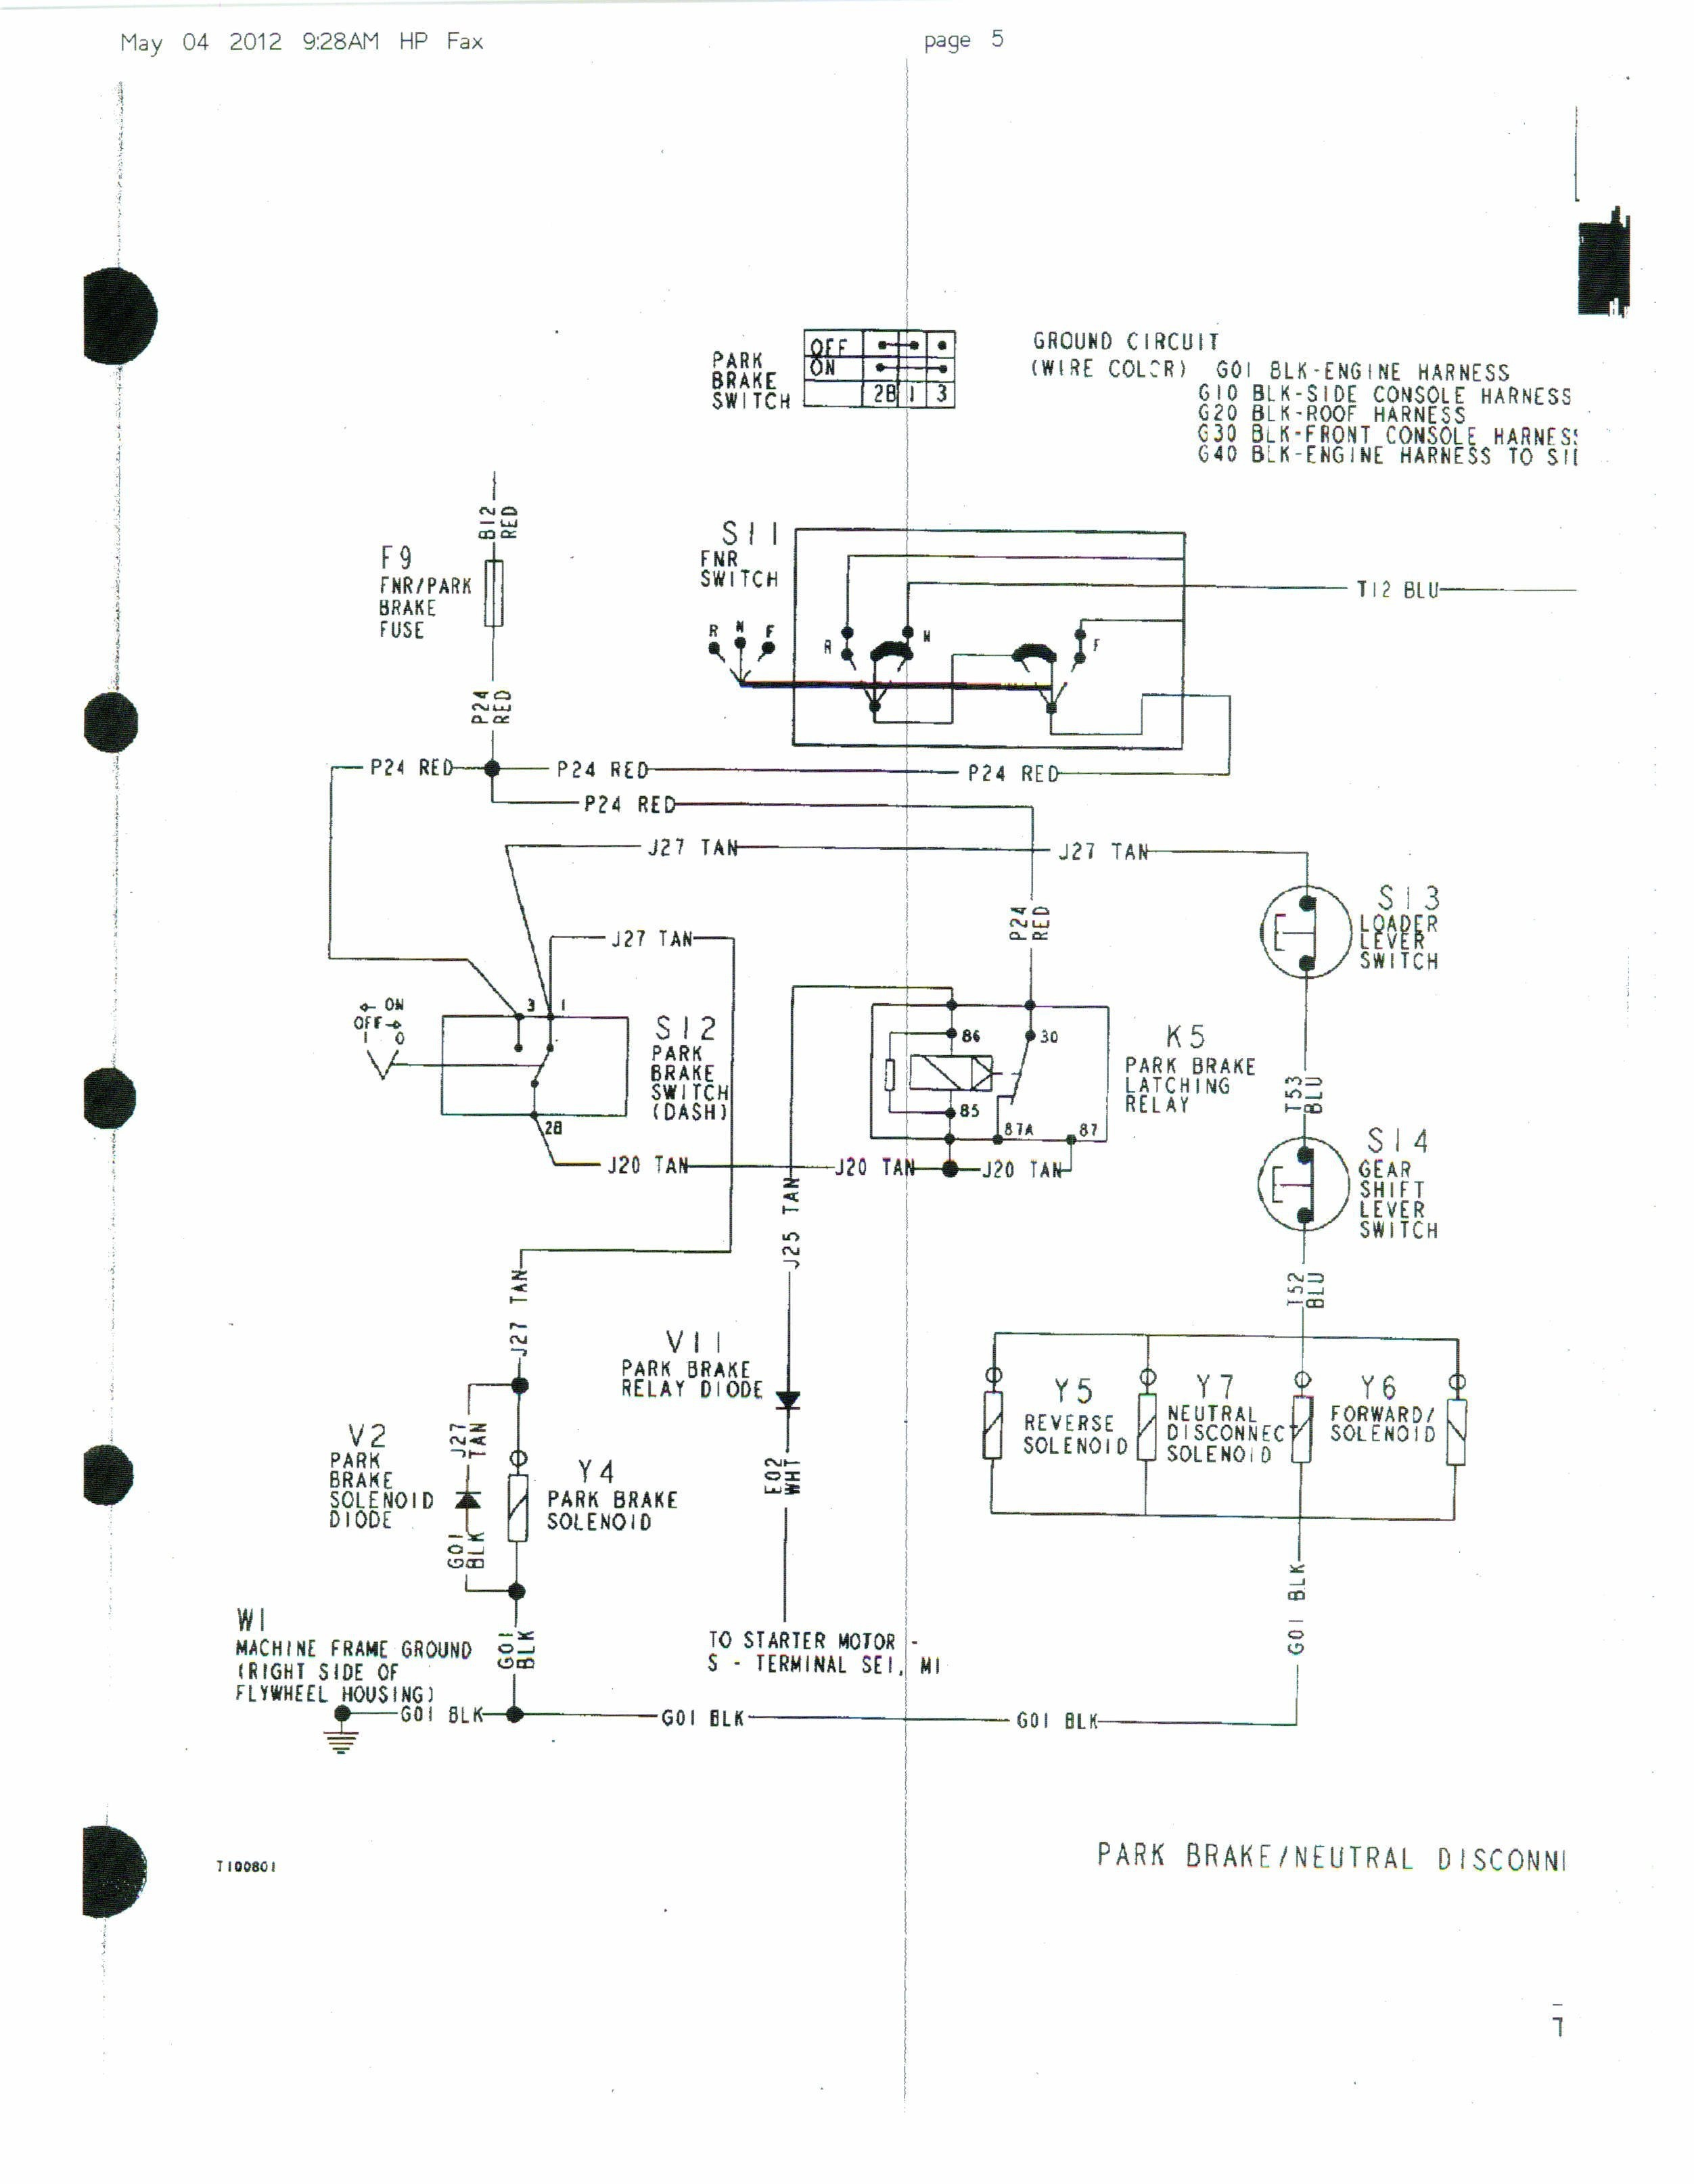 Parking Brake Diagram Emergency Brake Diagram Famous Parking Brake Switch Wiring Diagram Of Parking Brake Diagram